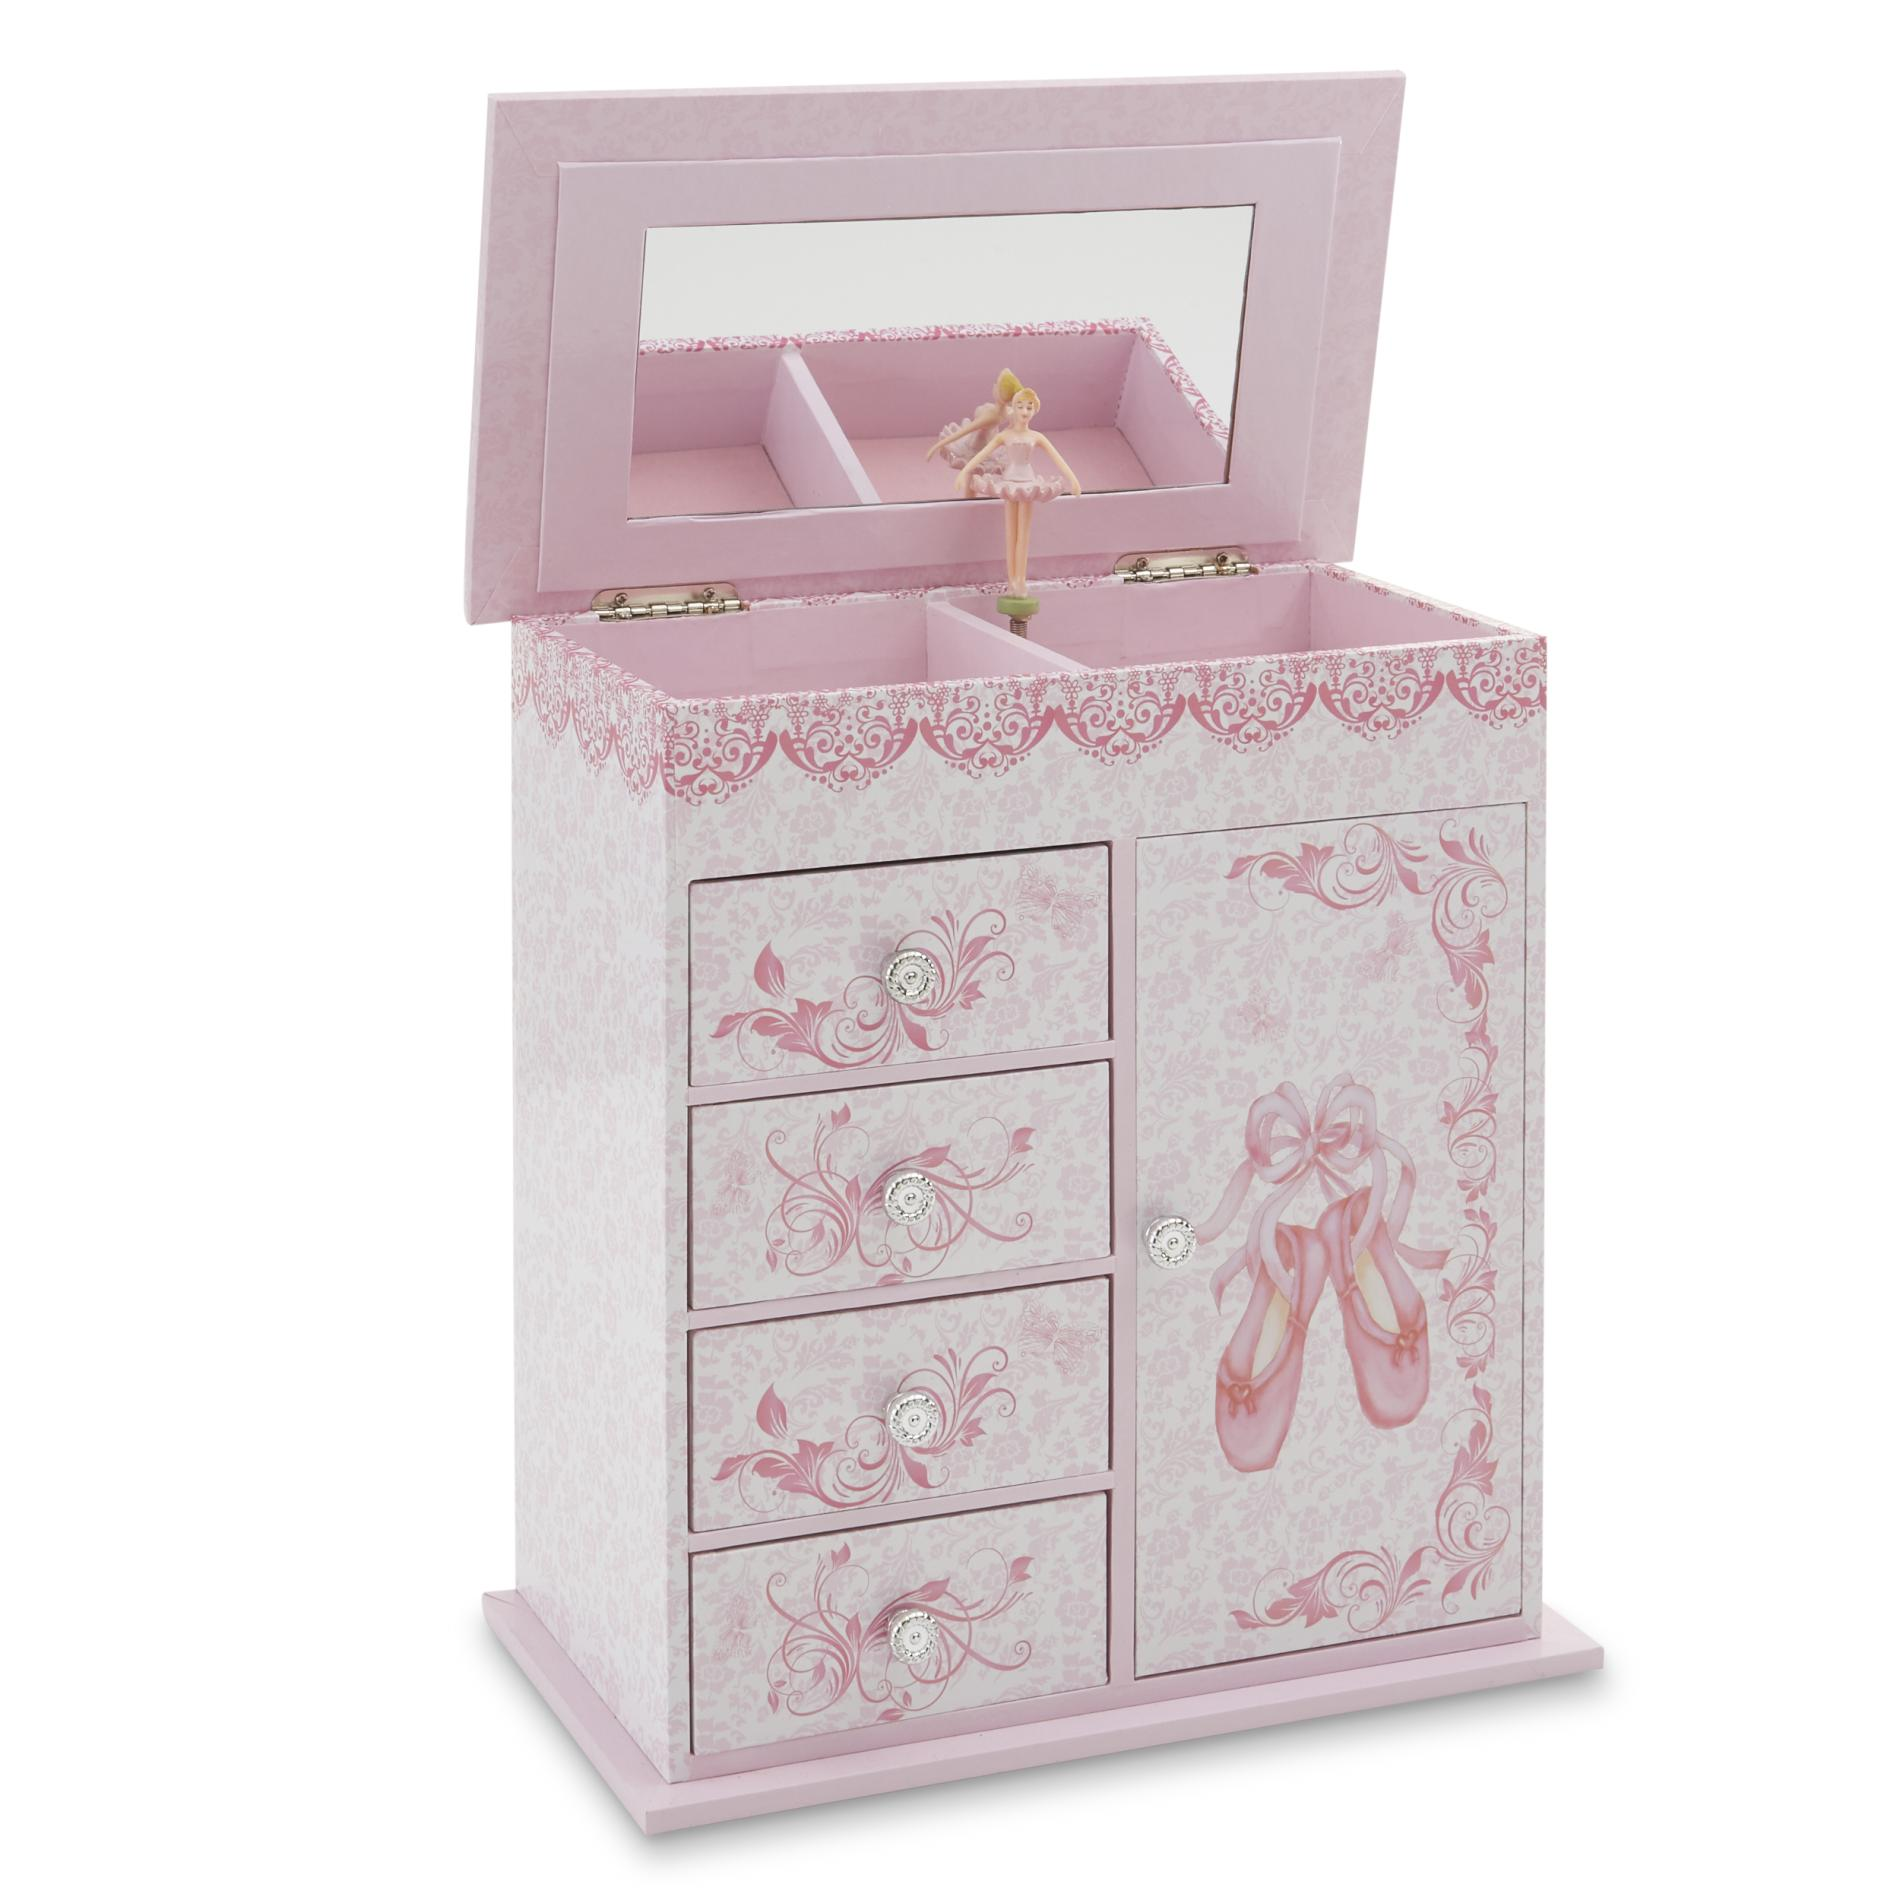 Little Girl39s First Musical Ballet Slippers Jewelry Box